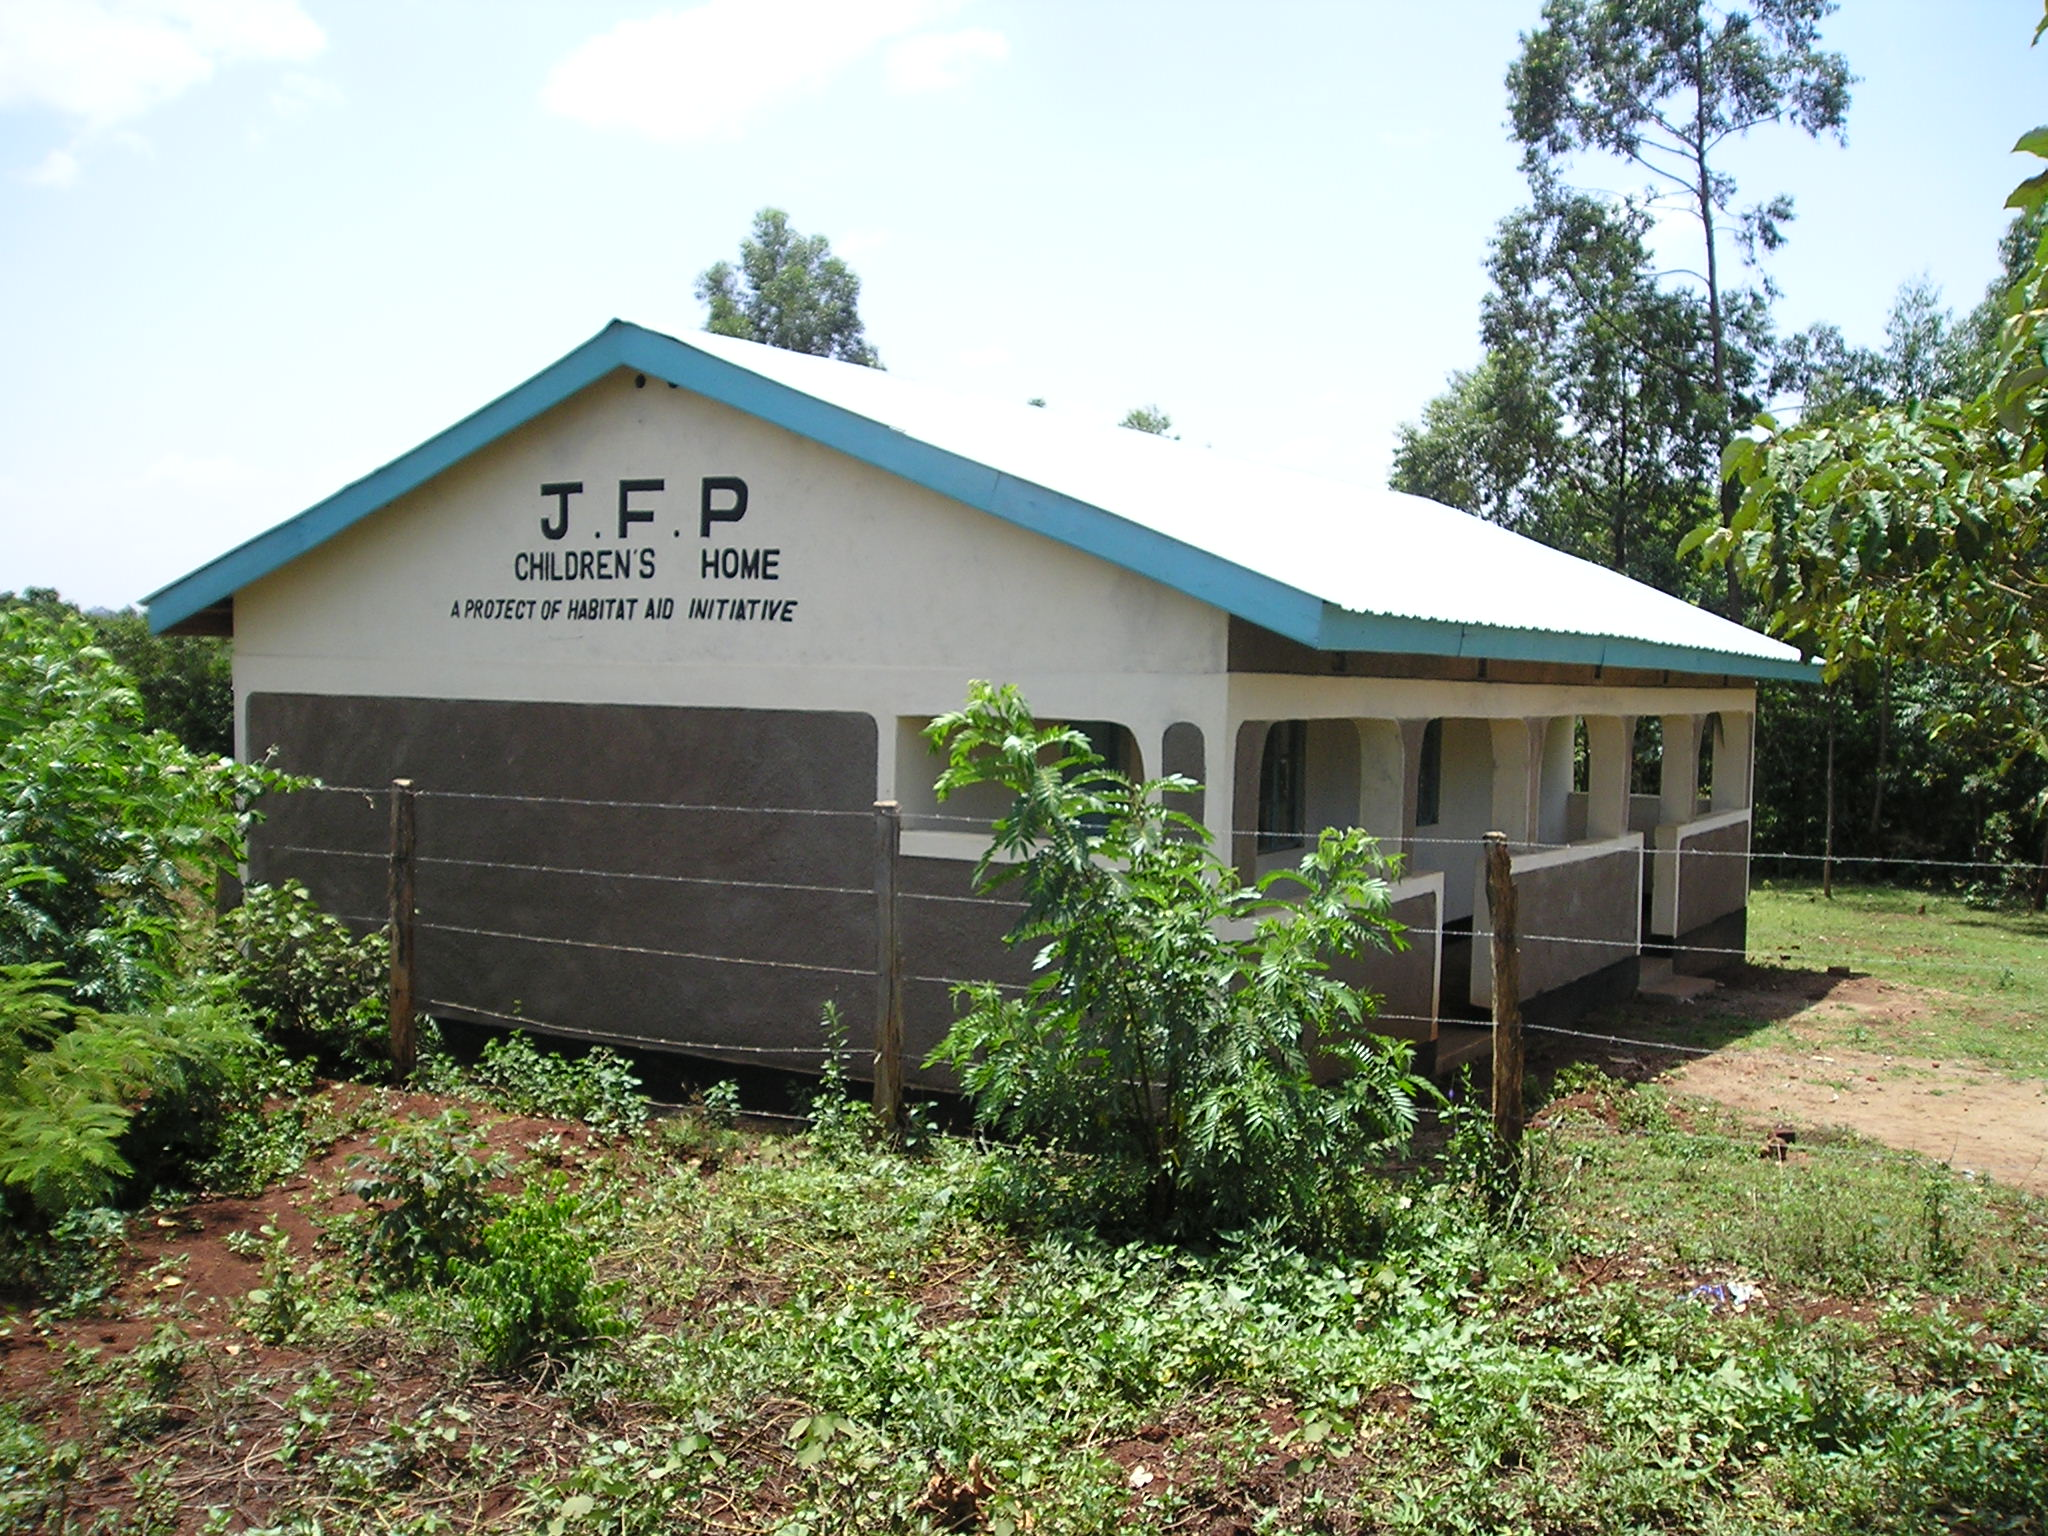 EKOLOMANI VILLAGE CHILDREN'S HOME